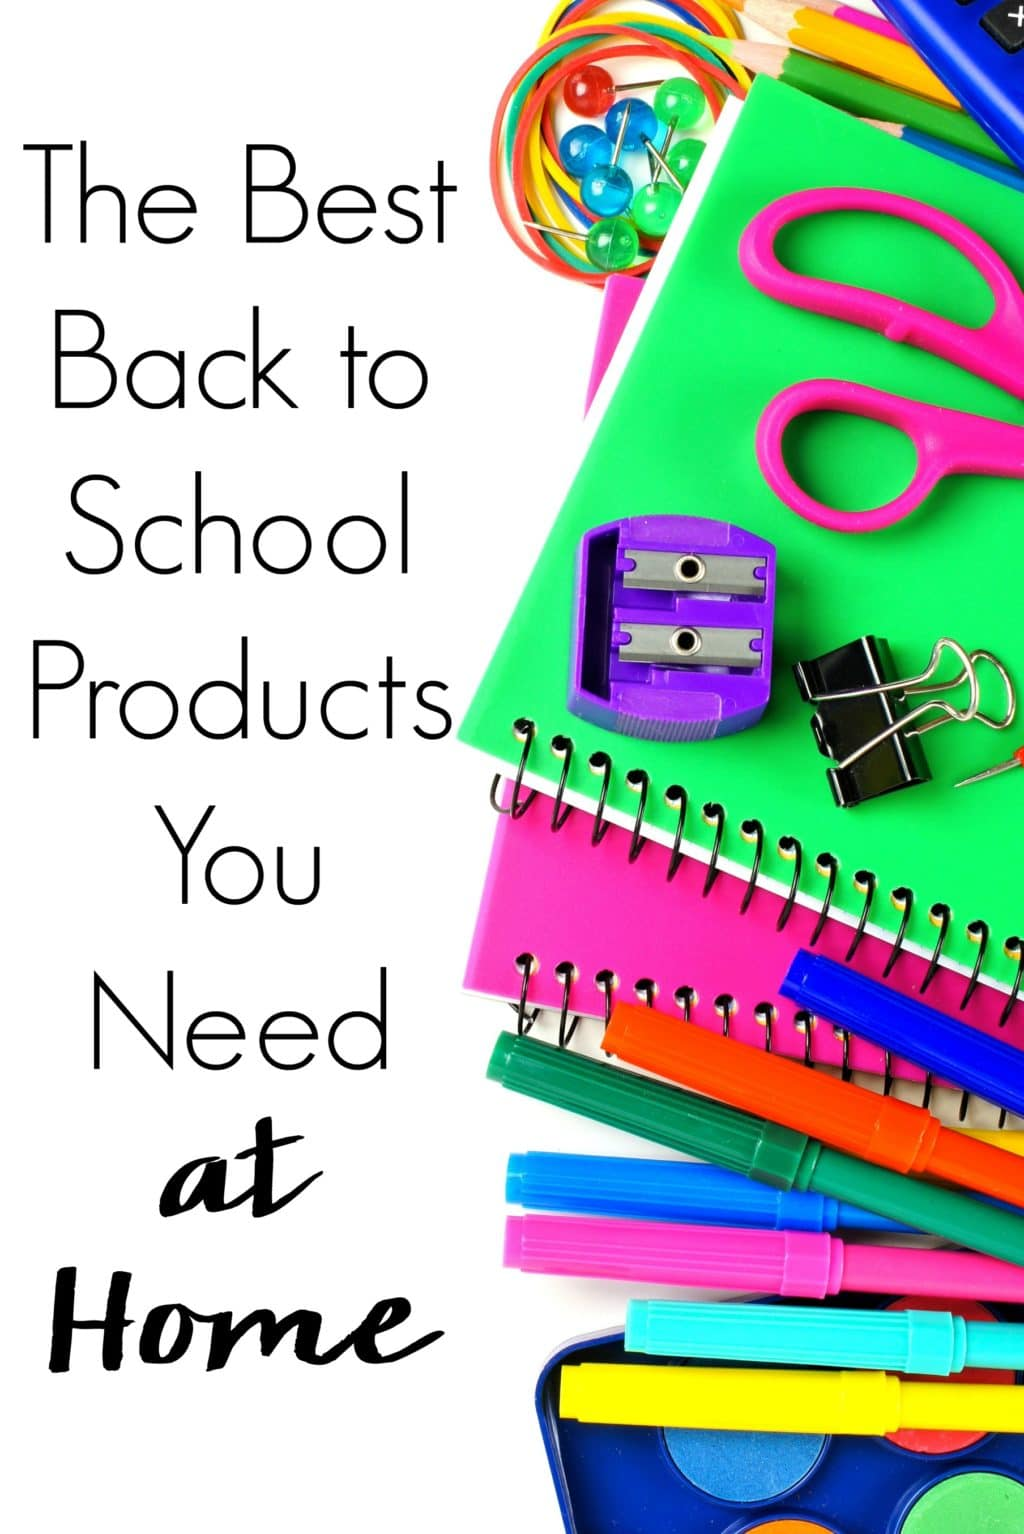 Back to school time is here again. You have a supply list for school but what about after? Check out the Best Back to School Products You Need at Home!